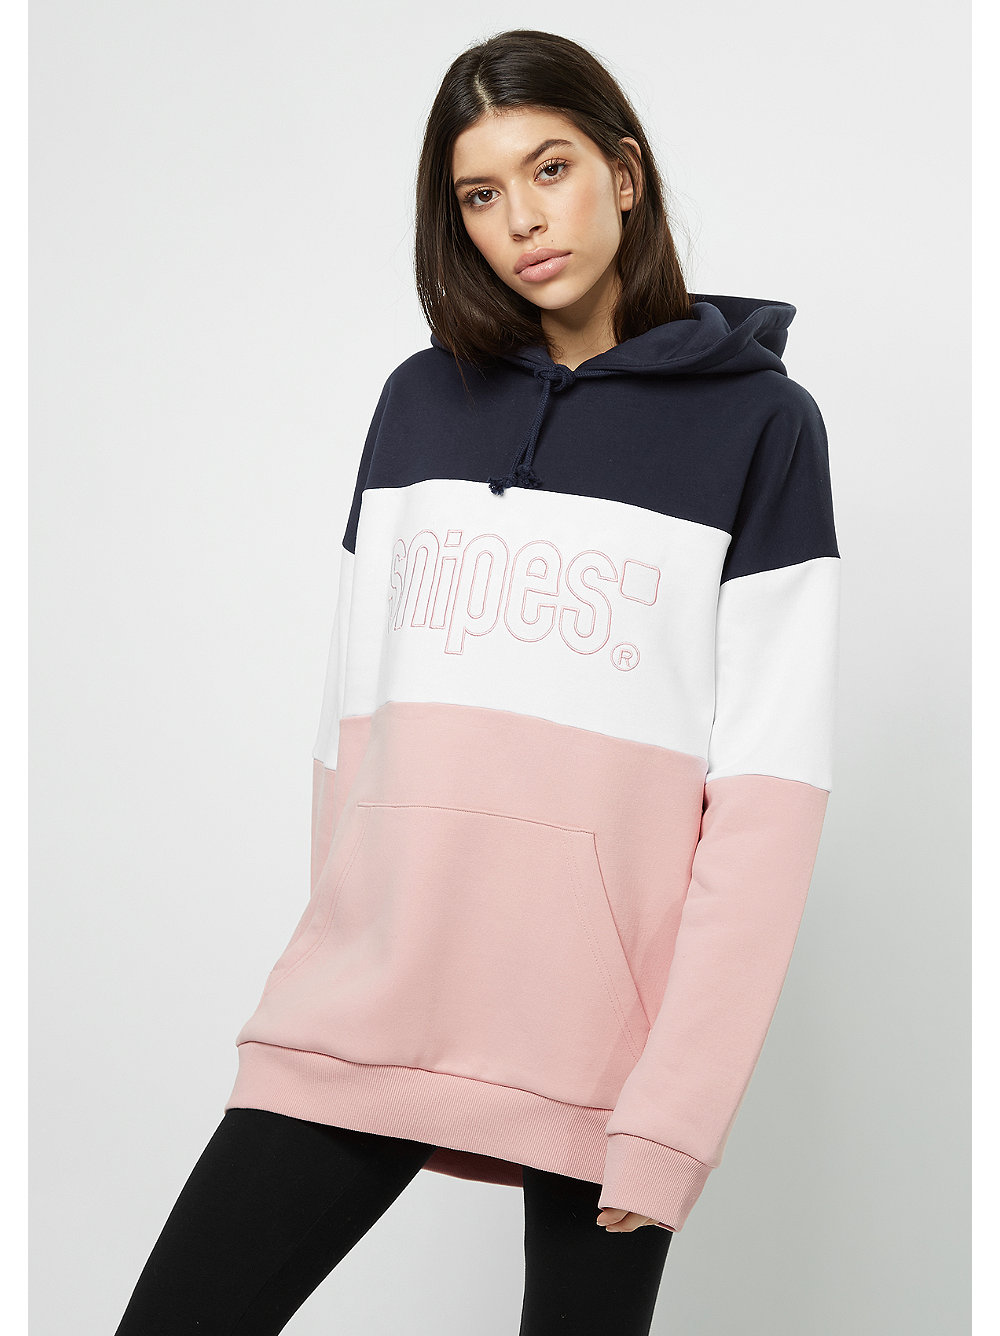 snipes hooded sweatshirt oversized silver pink snipes. Black Bedroom Furniture Sets. Home Design Ideas